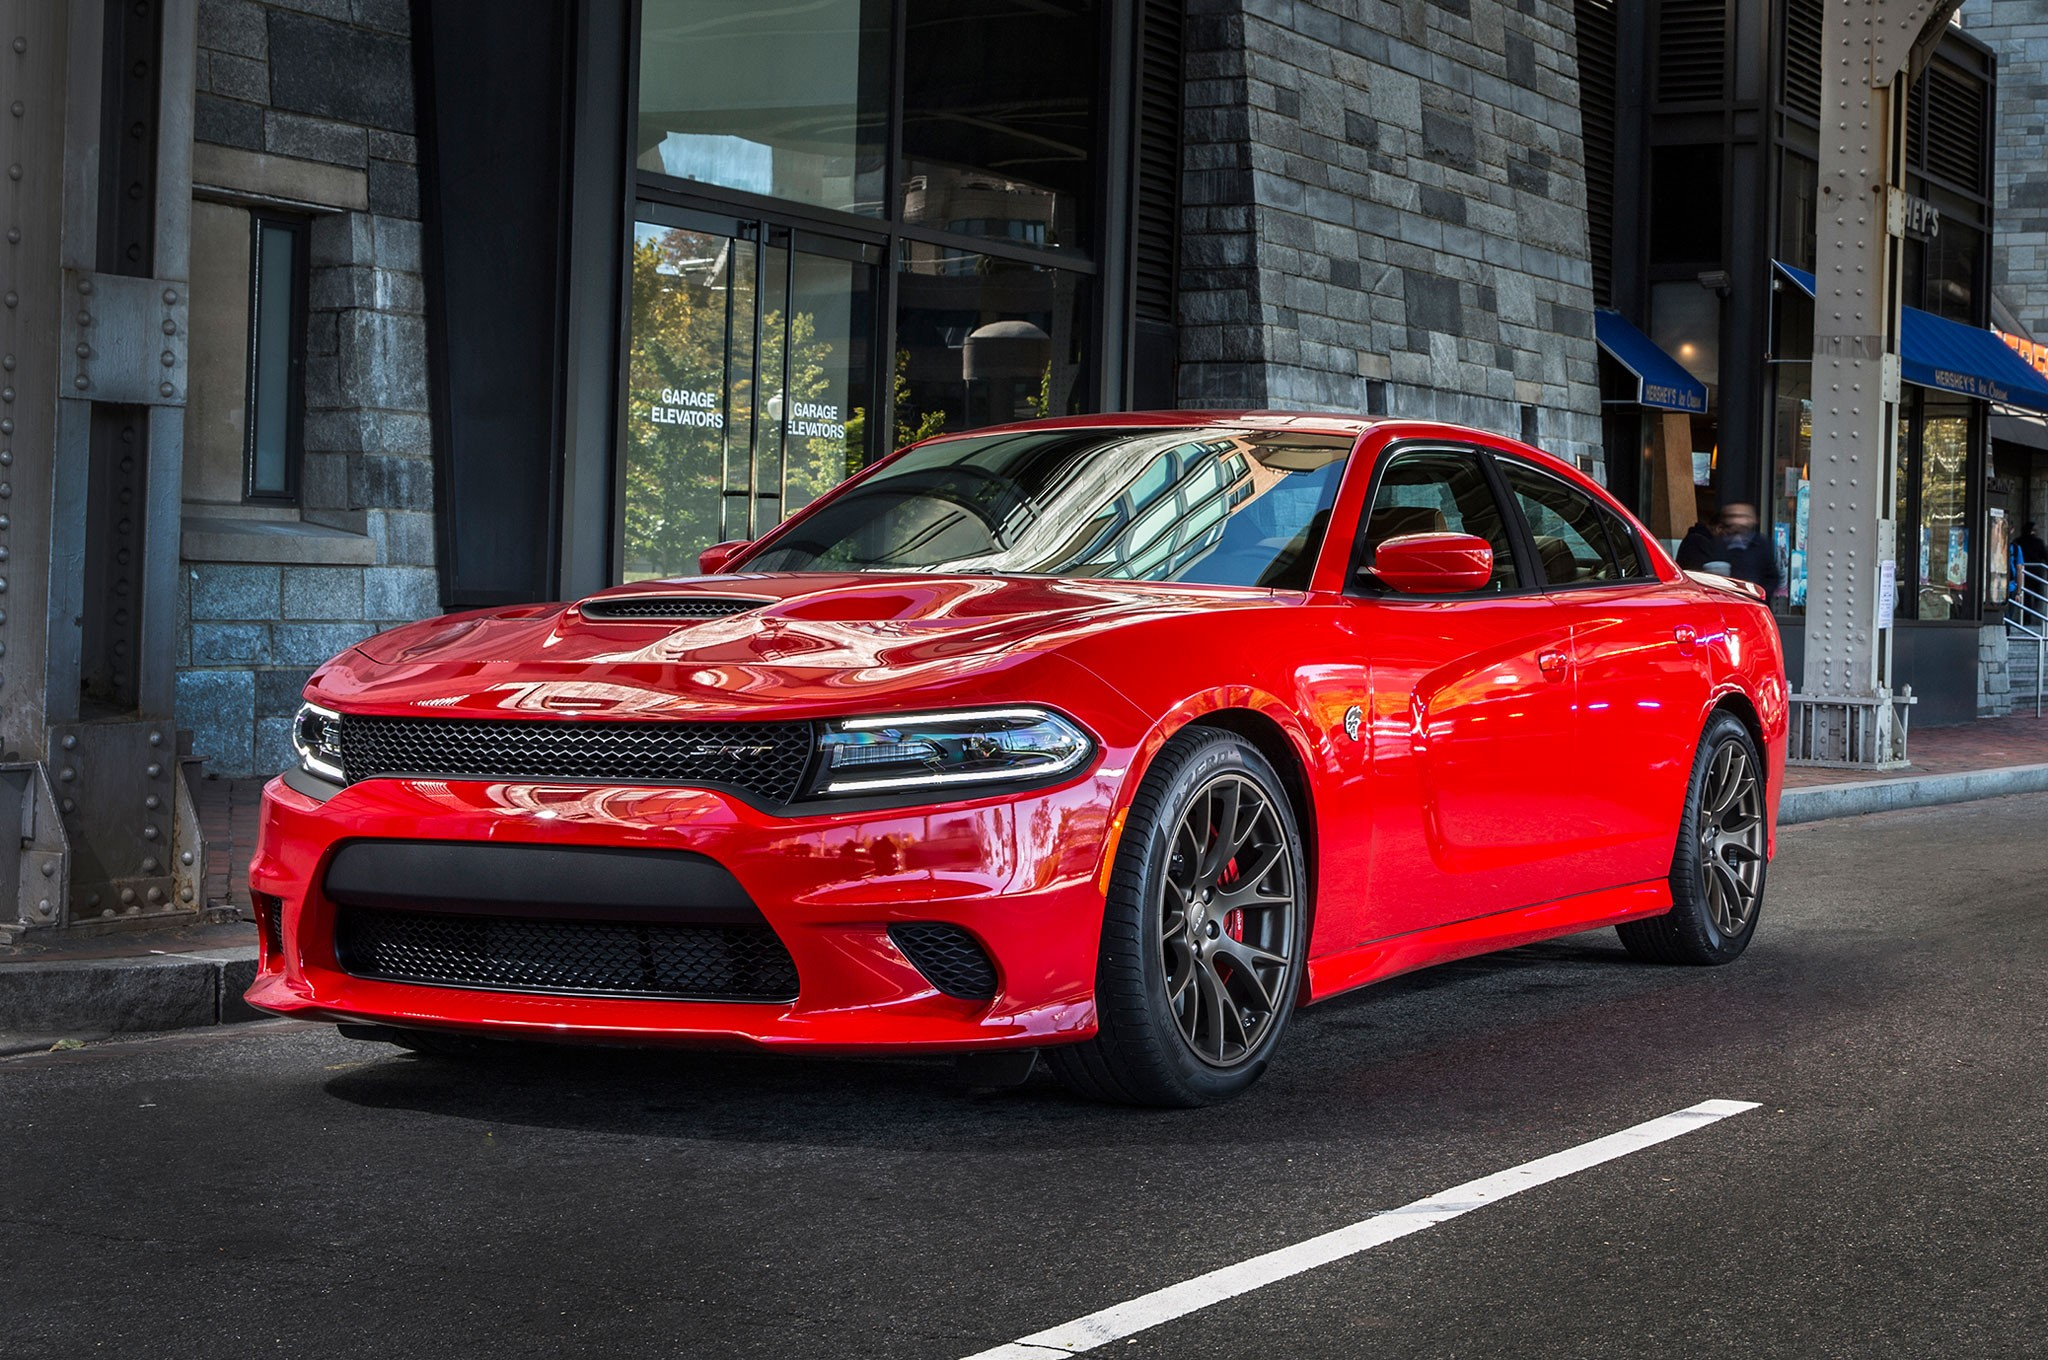 Oil Reset Blog Archive 2018 Dodge Charger SRT8 Red